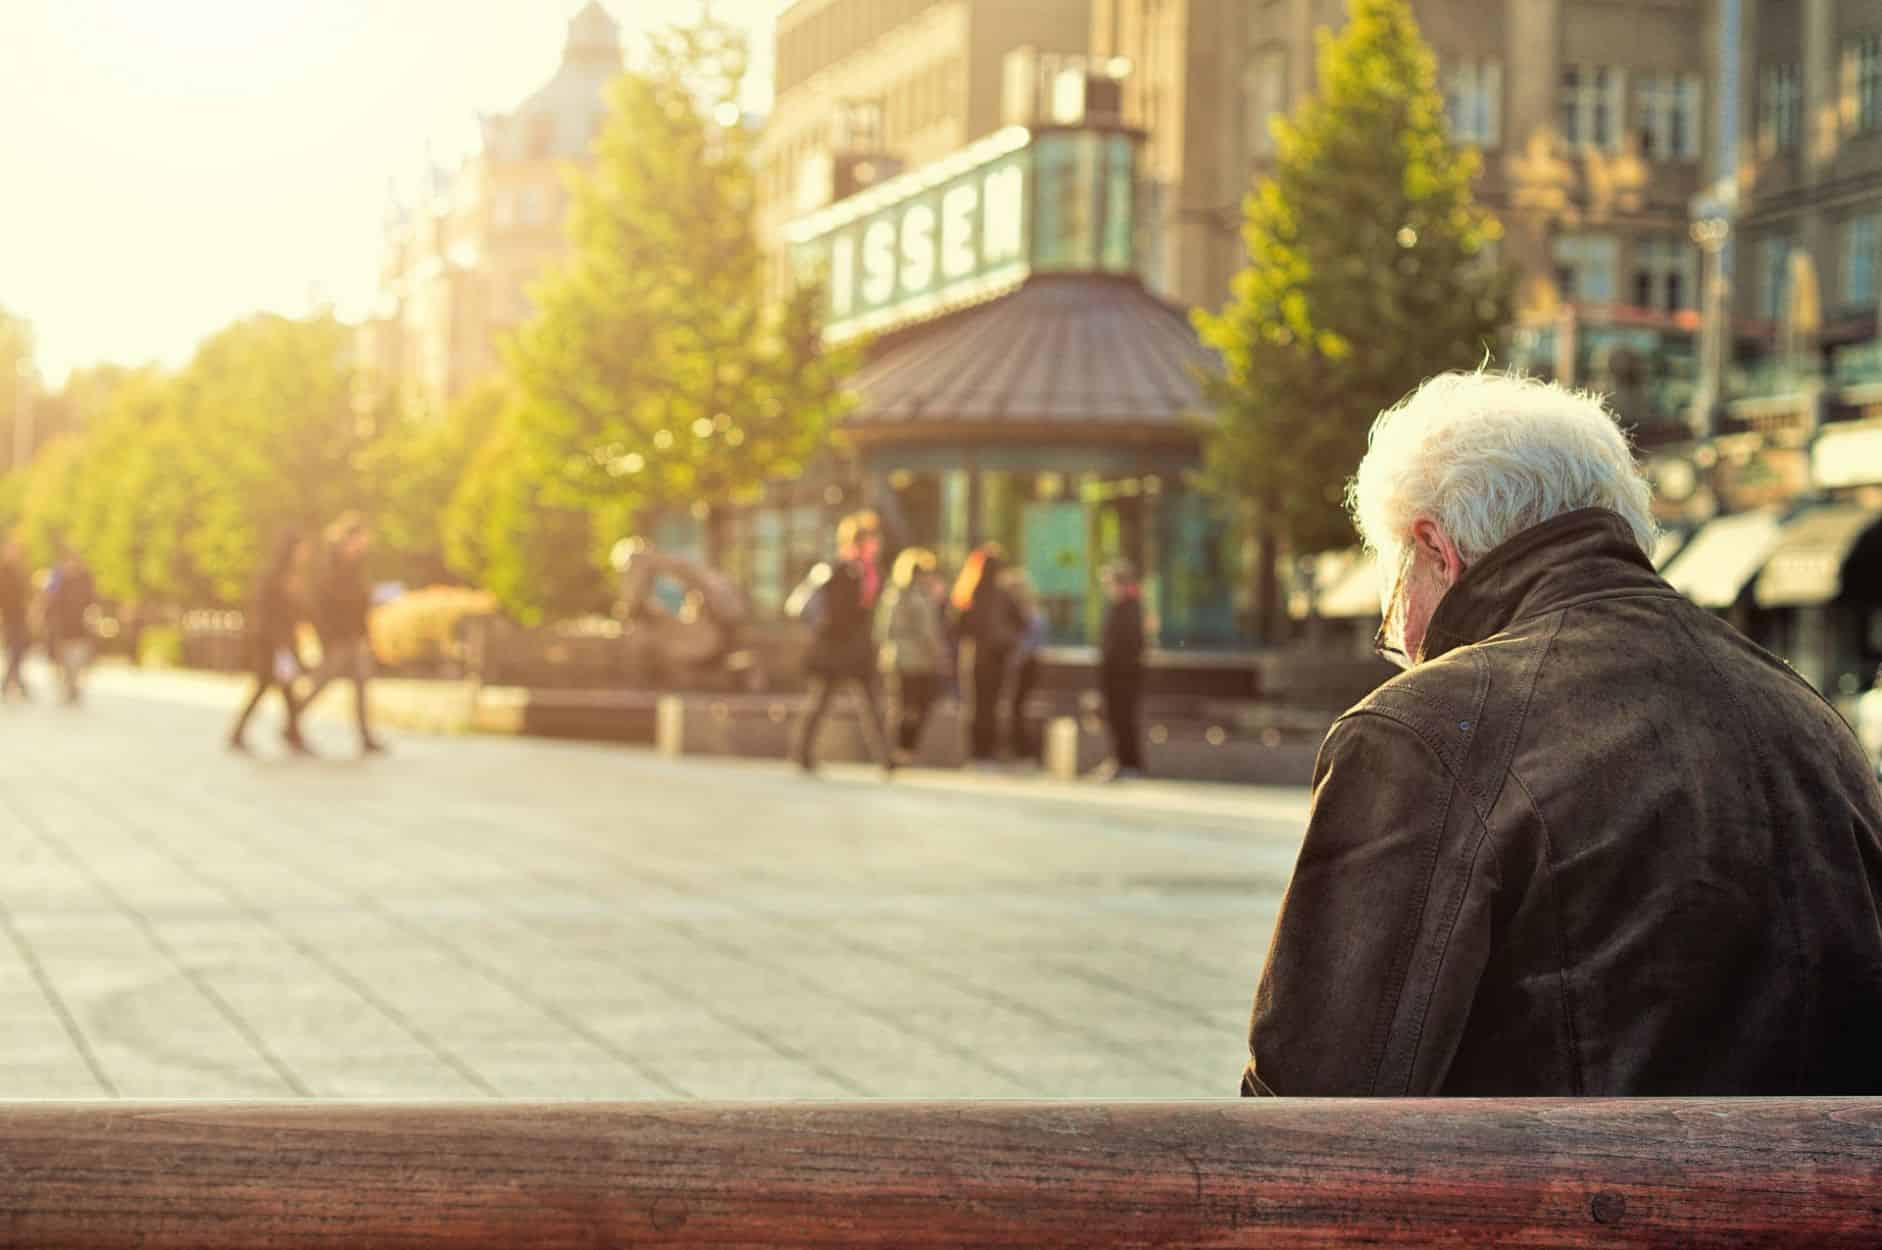 Los Angeles real estate blog - A man on a bench